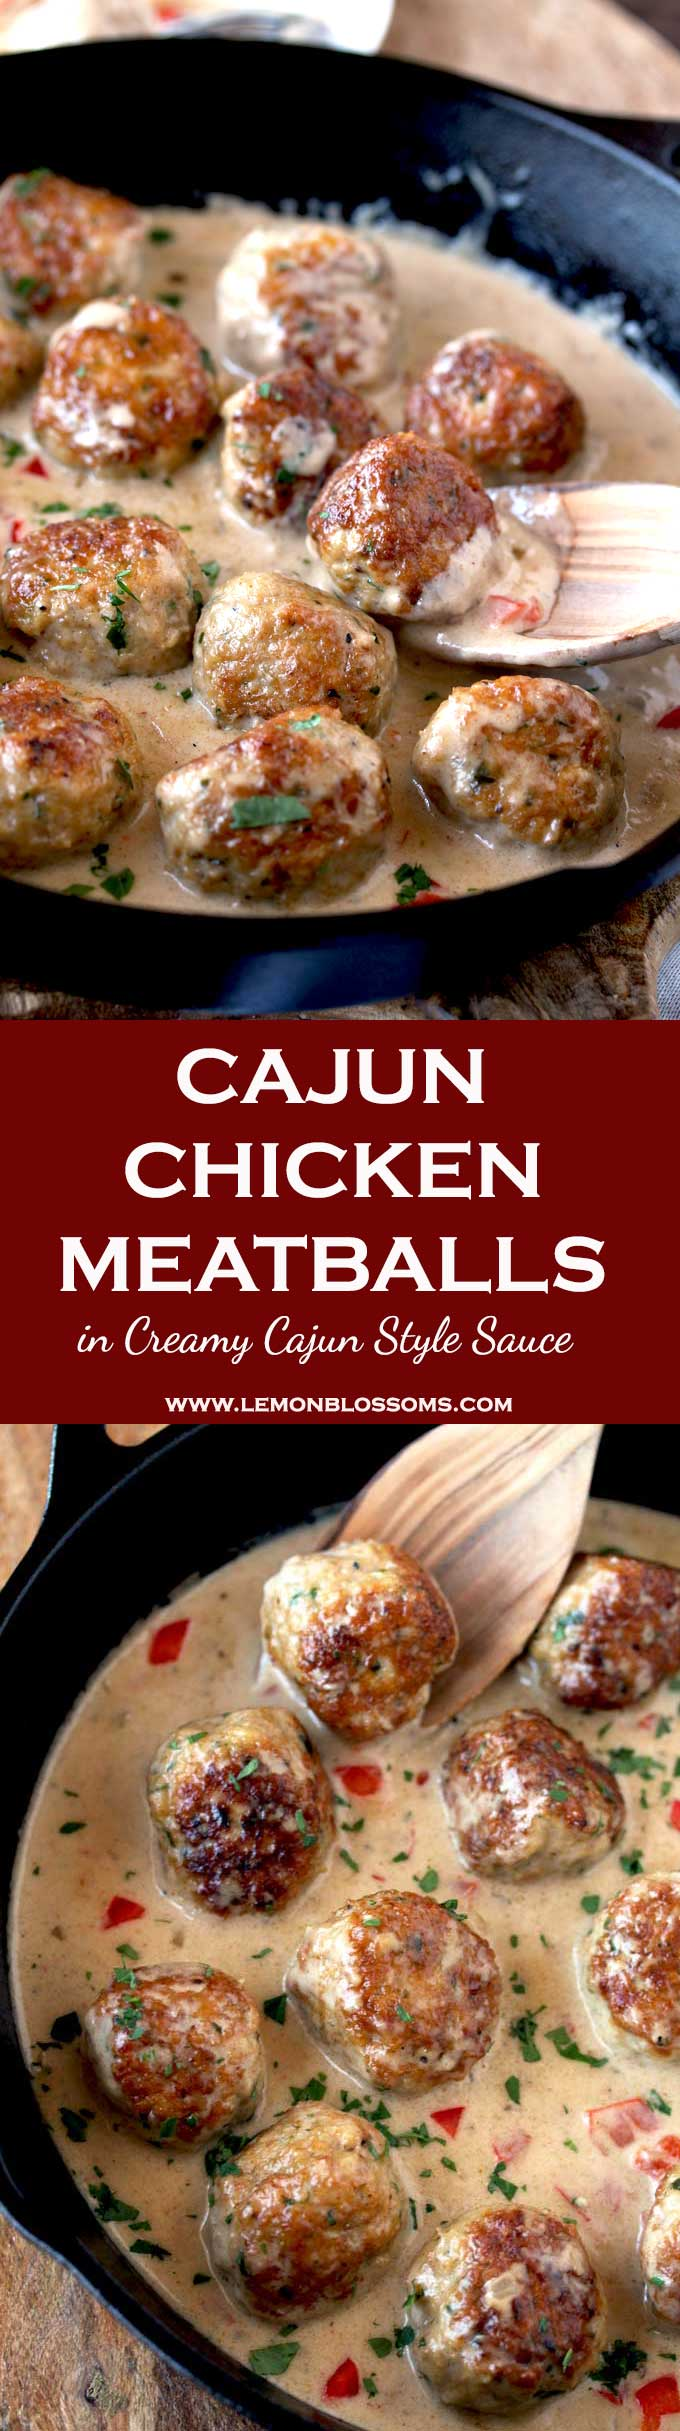 These Cajun Chicken Meatballs are tender, juicy and packed with flavor. Perfectly golden brown and smothered in a rich and creamy Cajun sauce.  Serve them over pasta, rice or with some toasty bread. This one-pot meal will become a family favorite! #Cajun #meatballs #chicken #recipe #dinner #appetizer